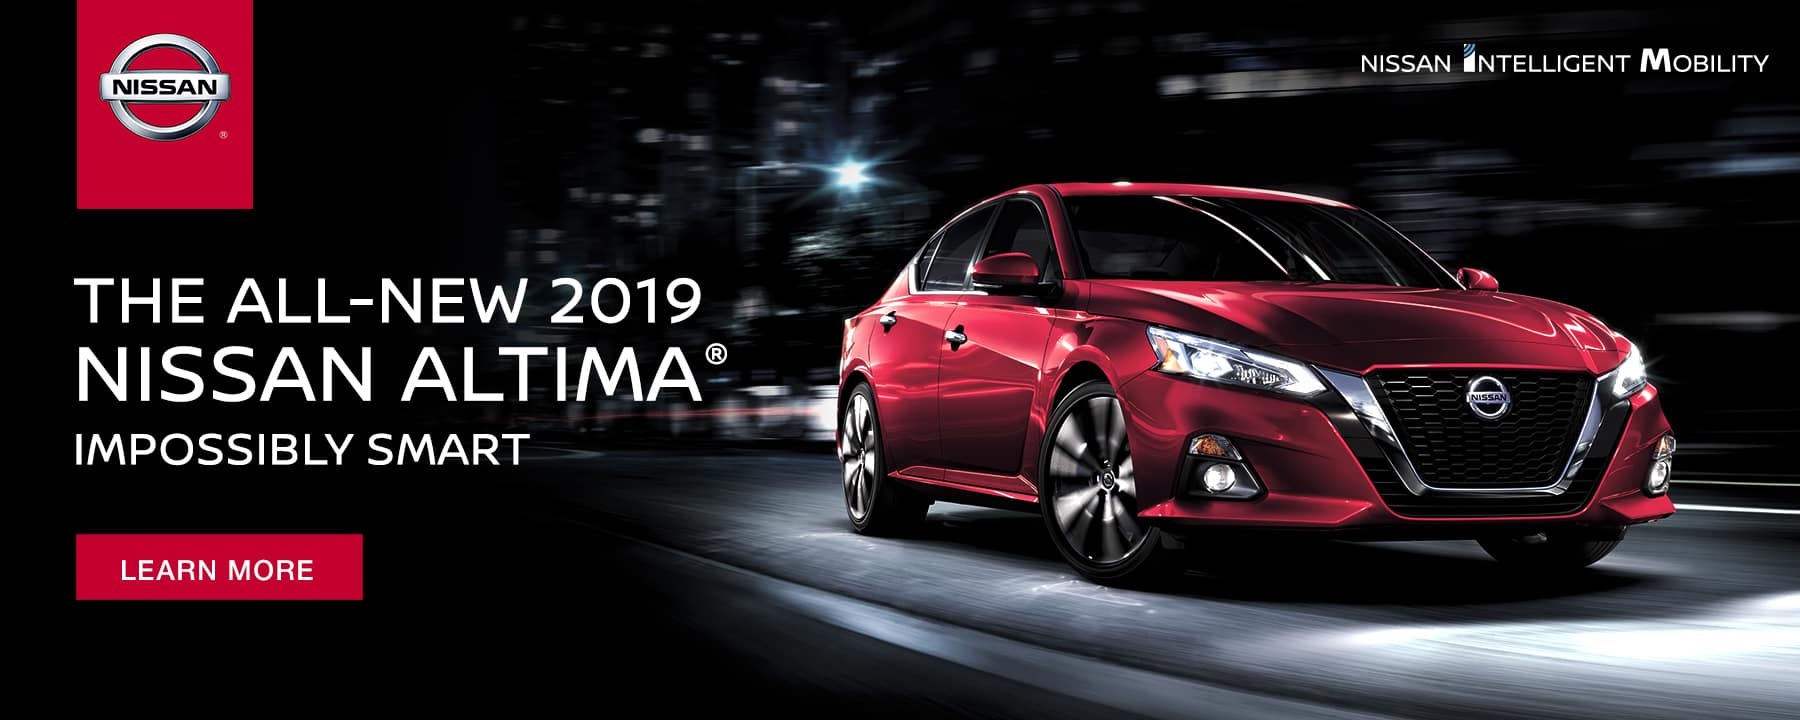 Introducing the all-new Nissan Altima! Order yours today at Star Nissan!